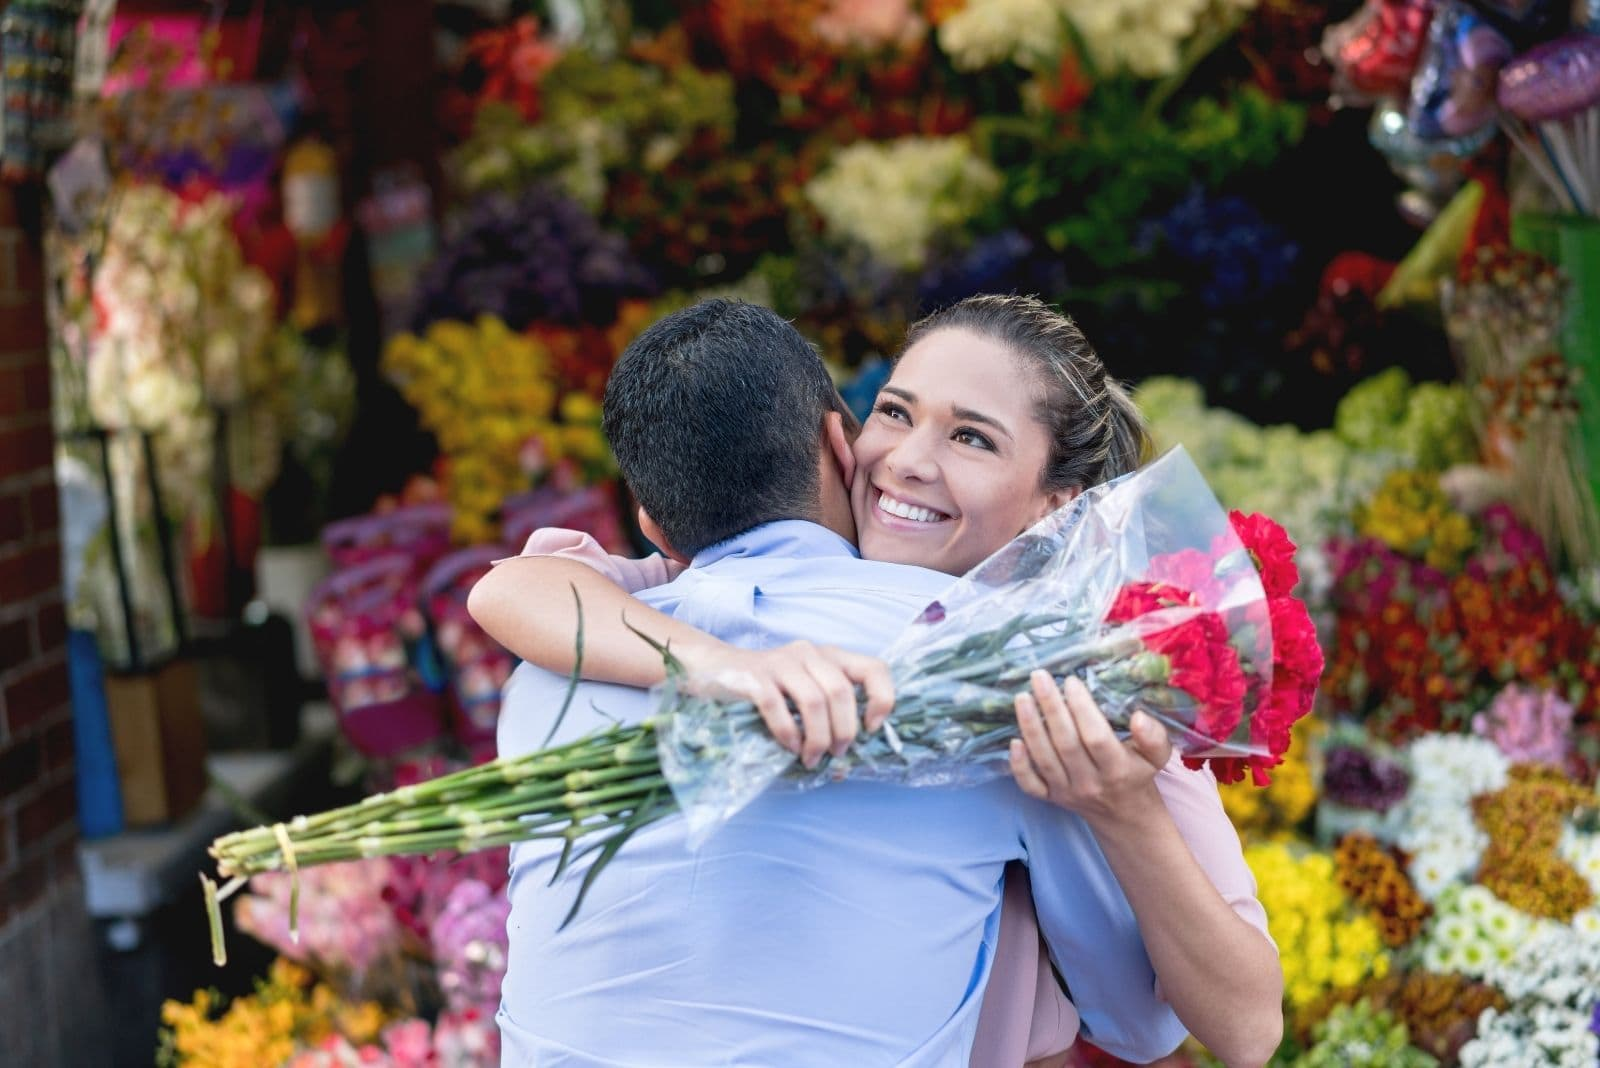 romantic couple giving flower hugging the man near the flower shop